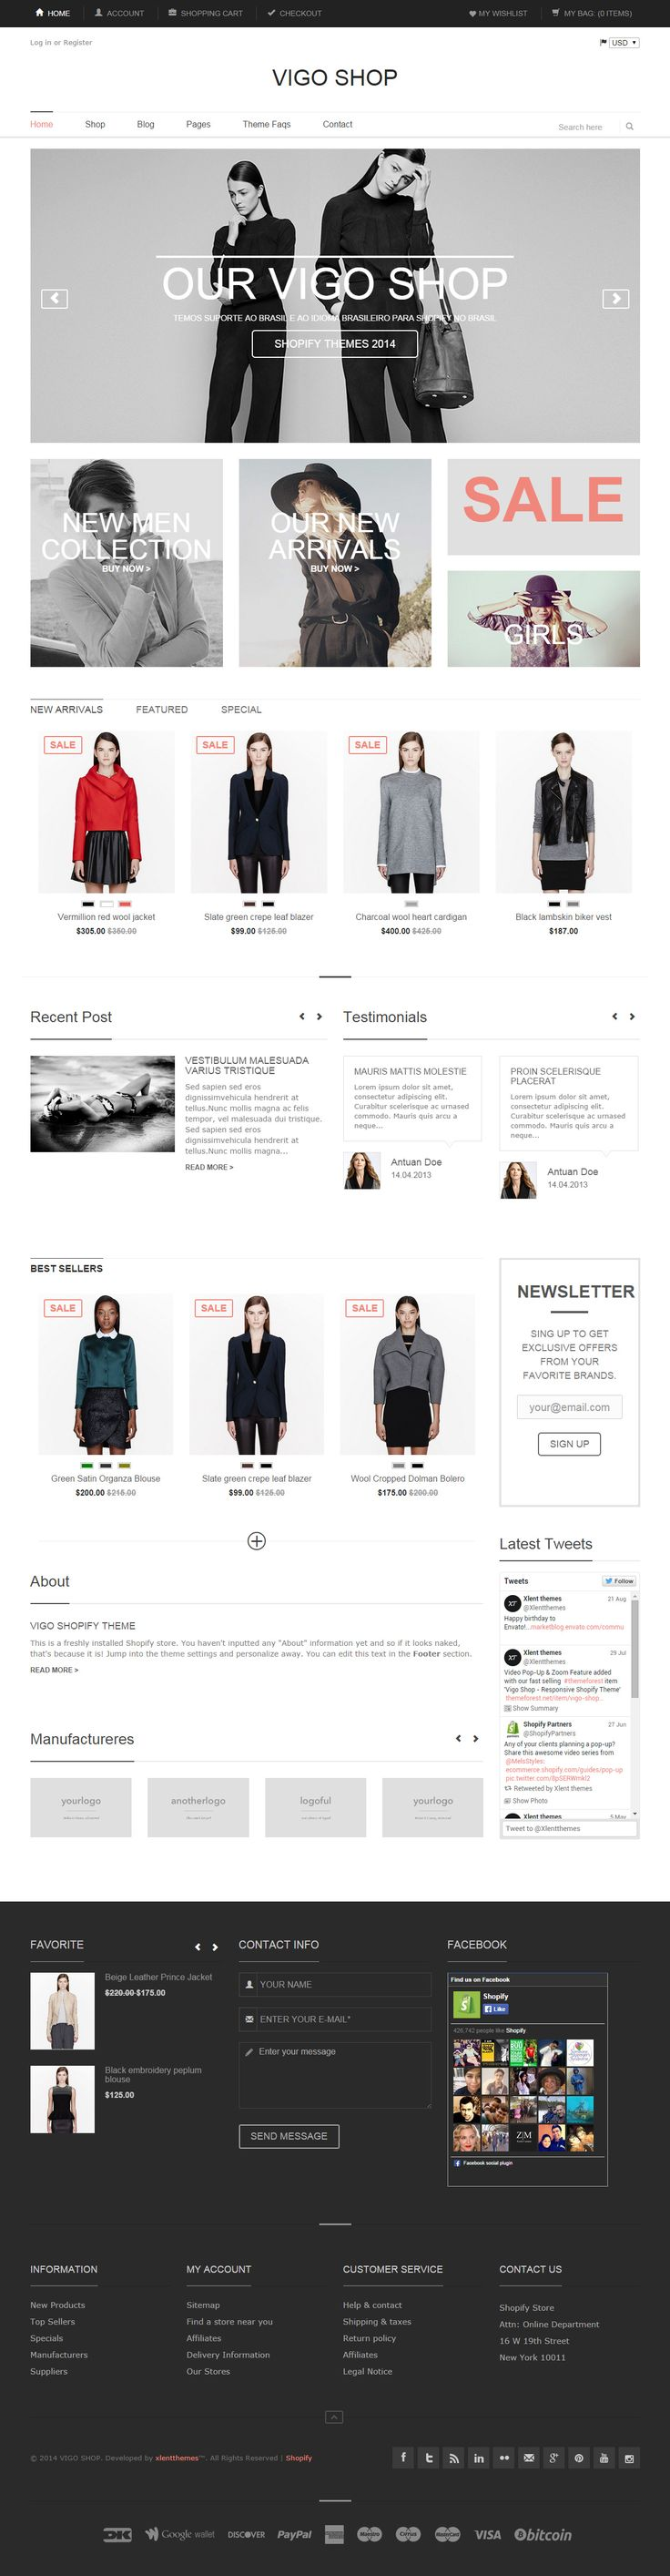 12 best shopify themes images on pinterest website template website themes and website designs